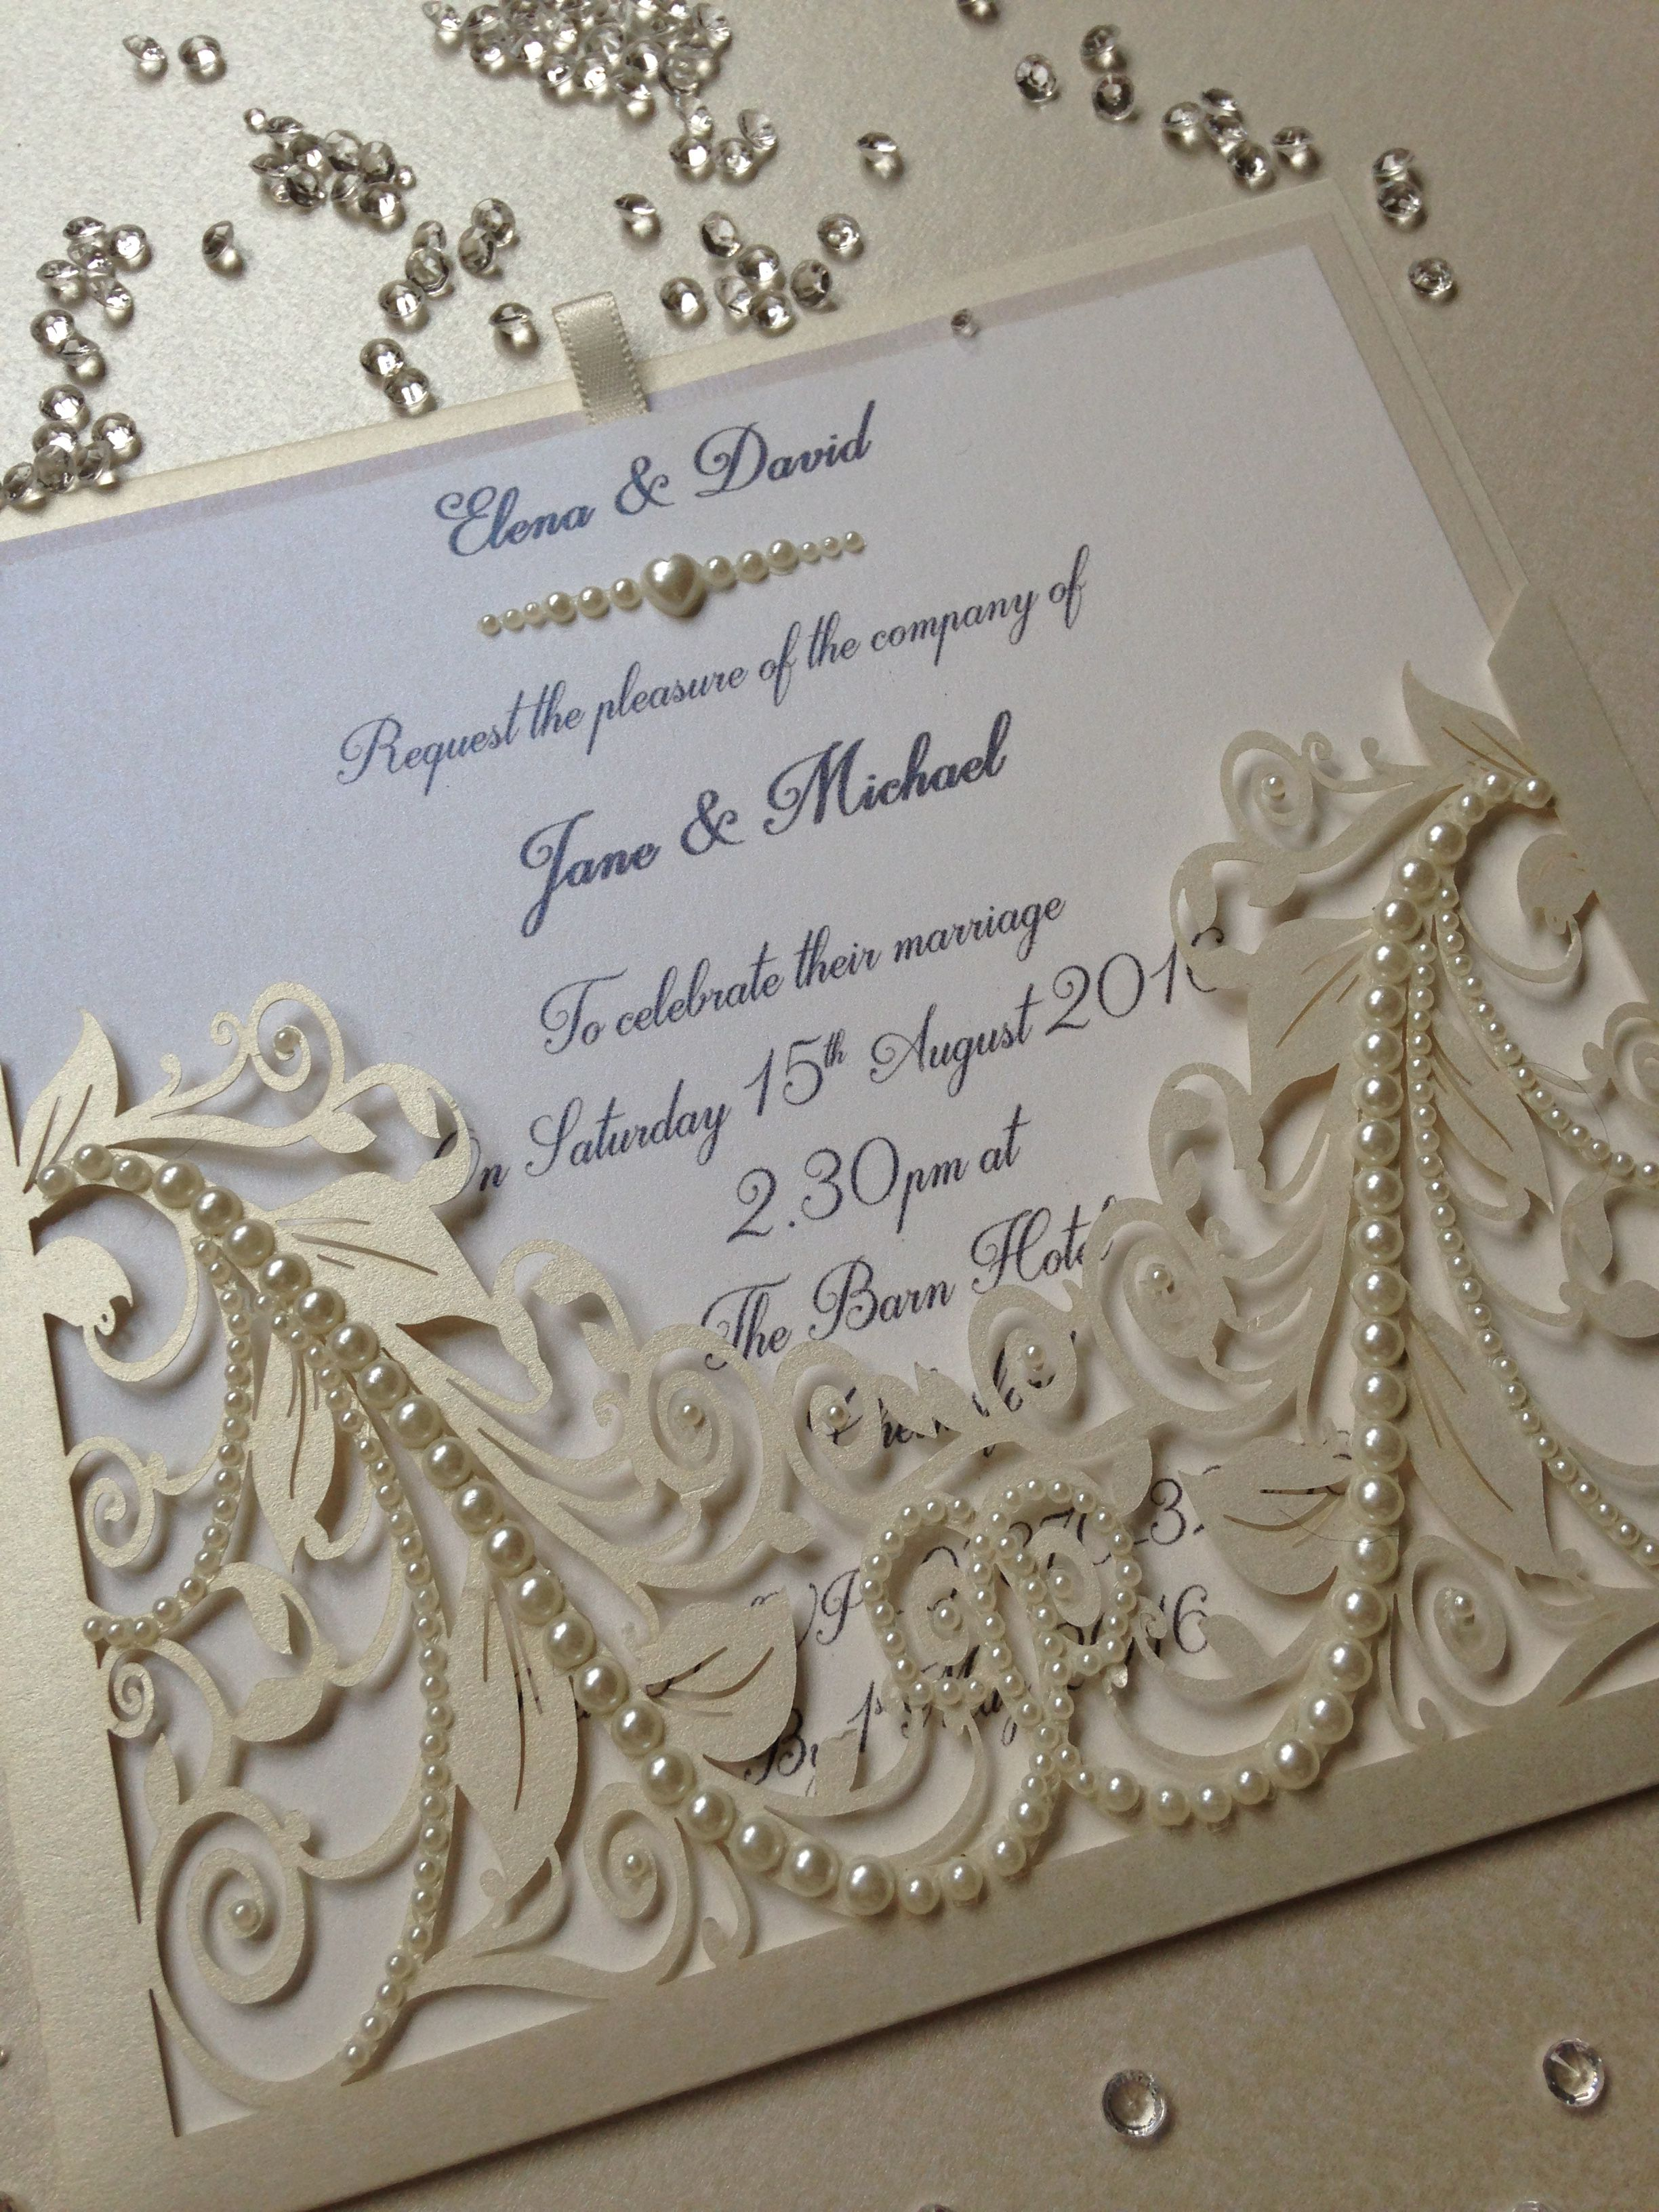 Vintage Pocket Ivory Pearl Wedding Invitation With Embellishments Hand Made By Crafty Designer